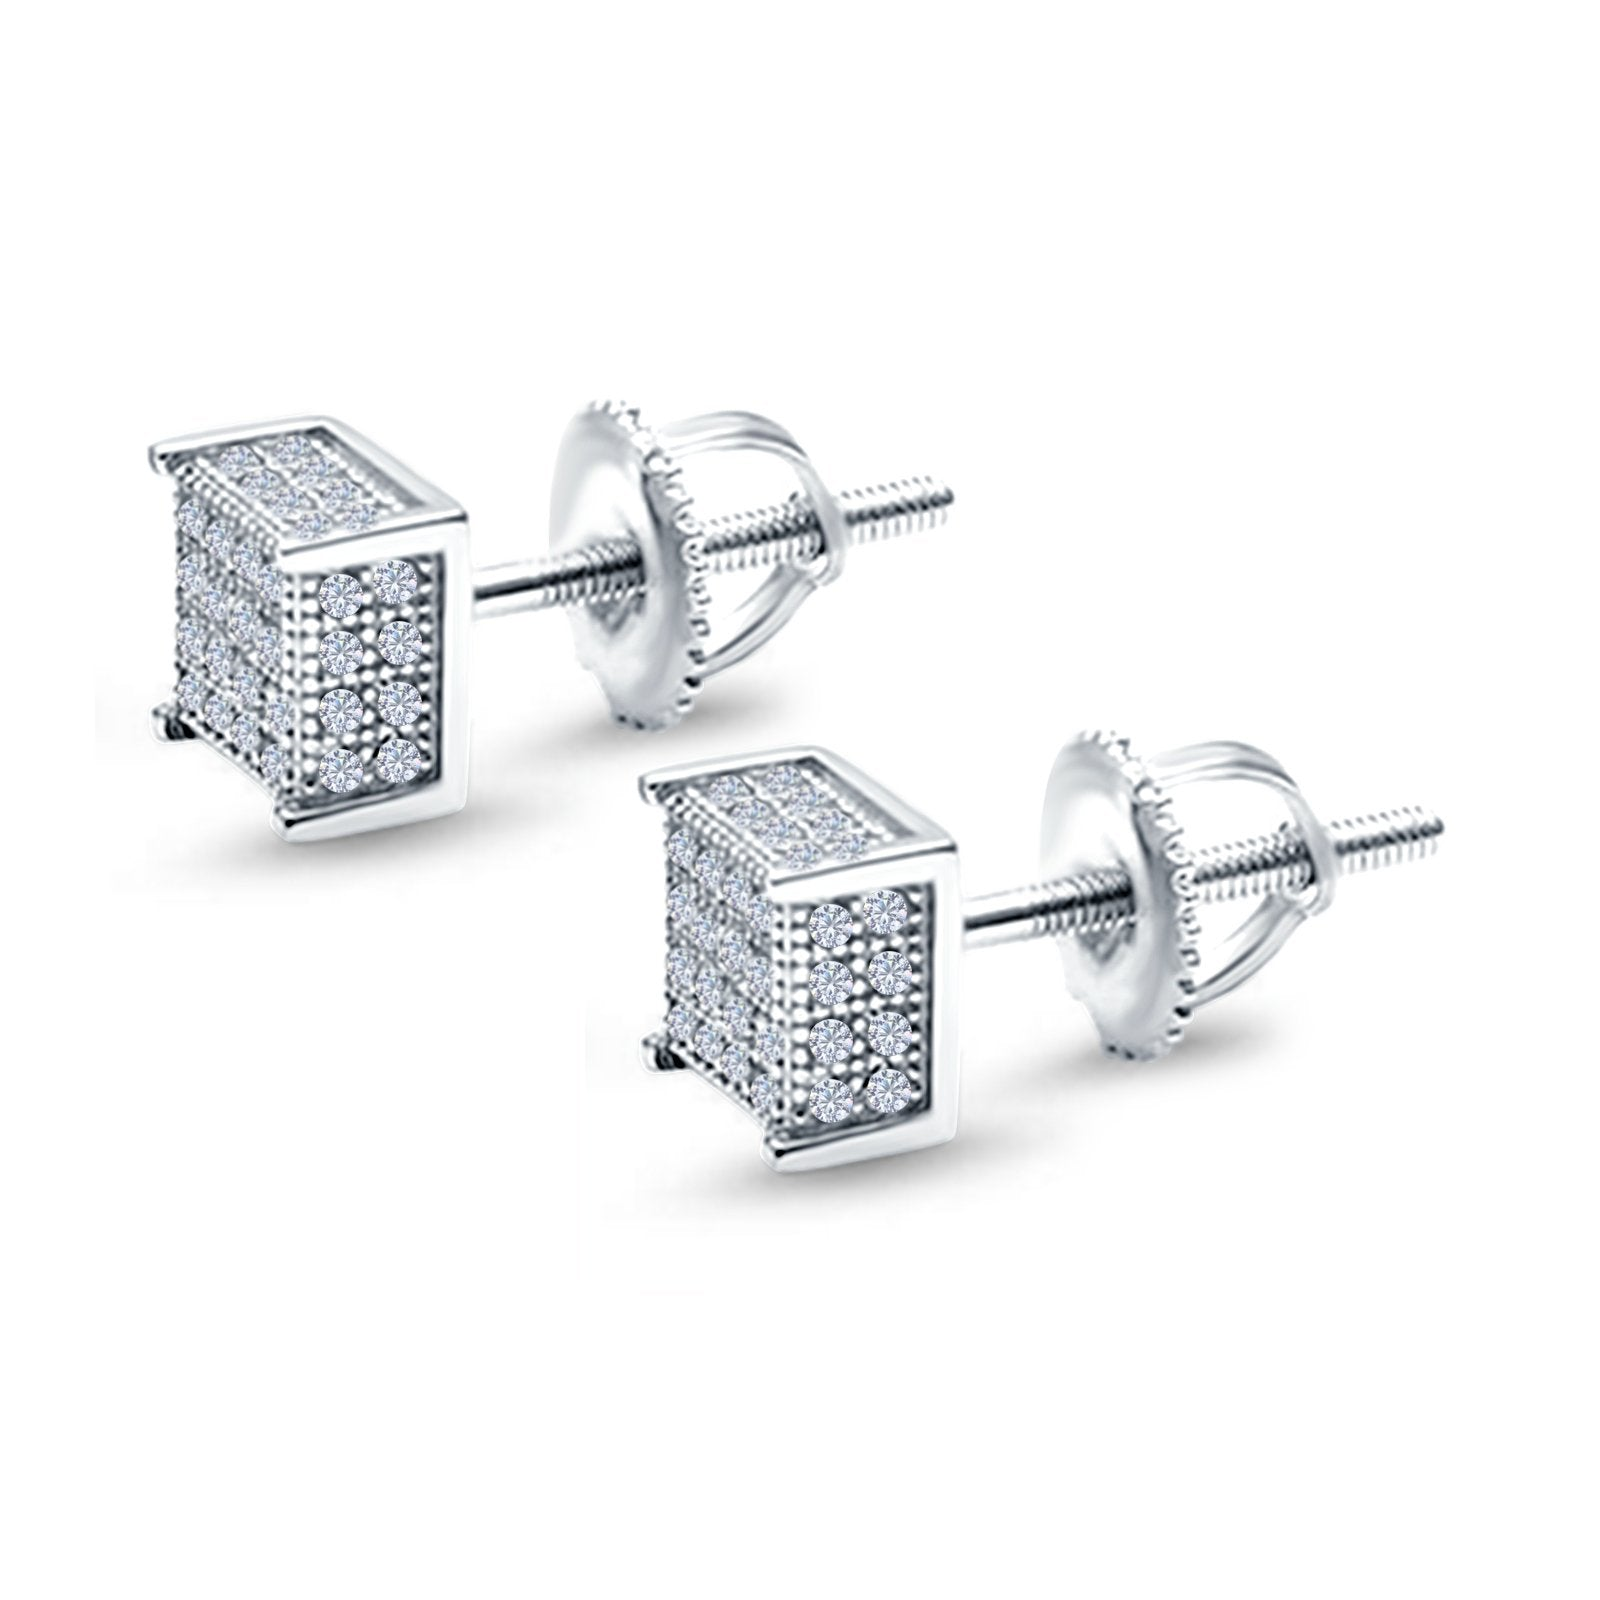 Square Stud Earrings Simulated CZ Accent Screw Back 925 Sterling Silver (6mm)